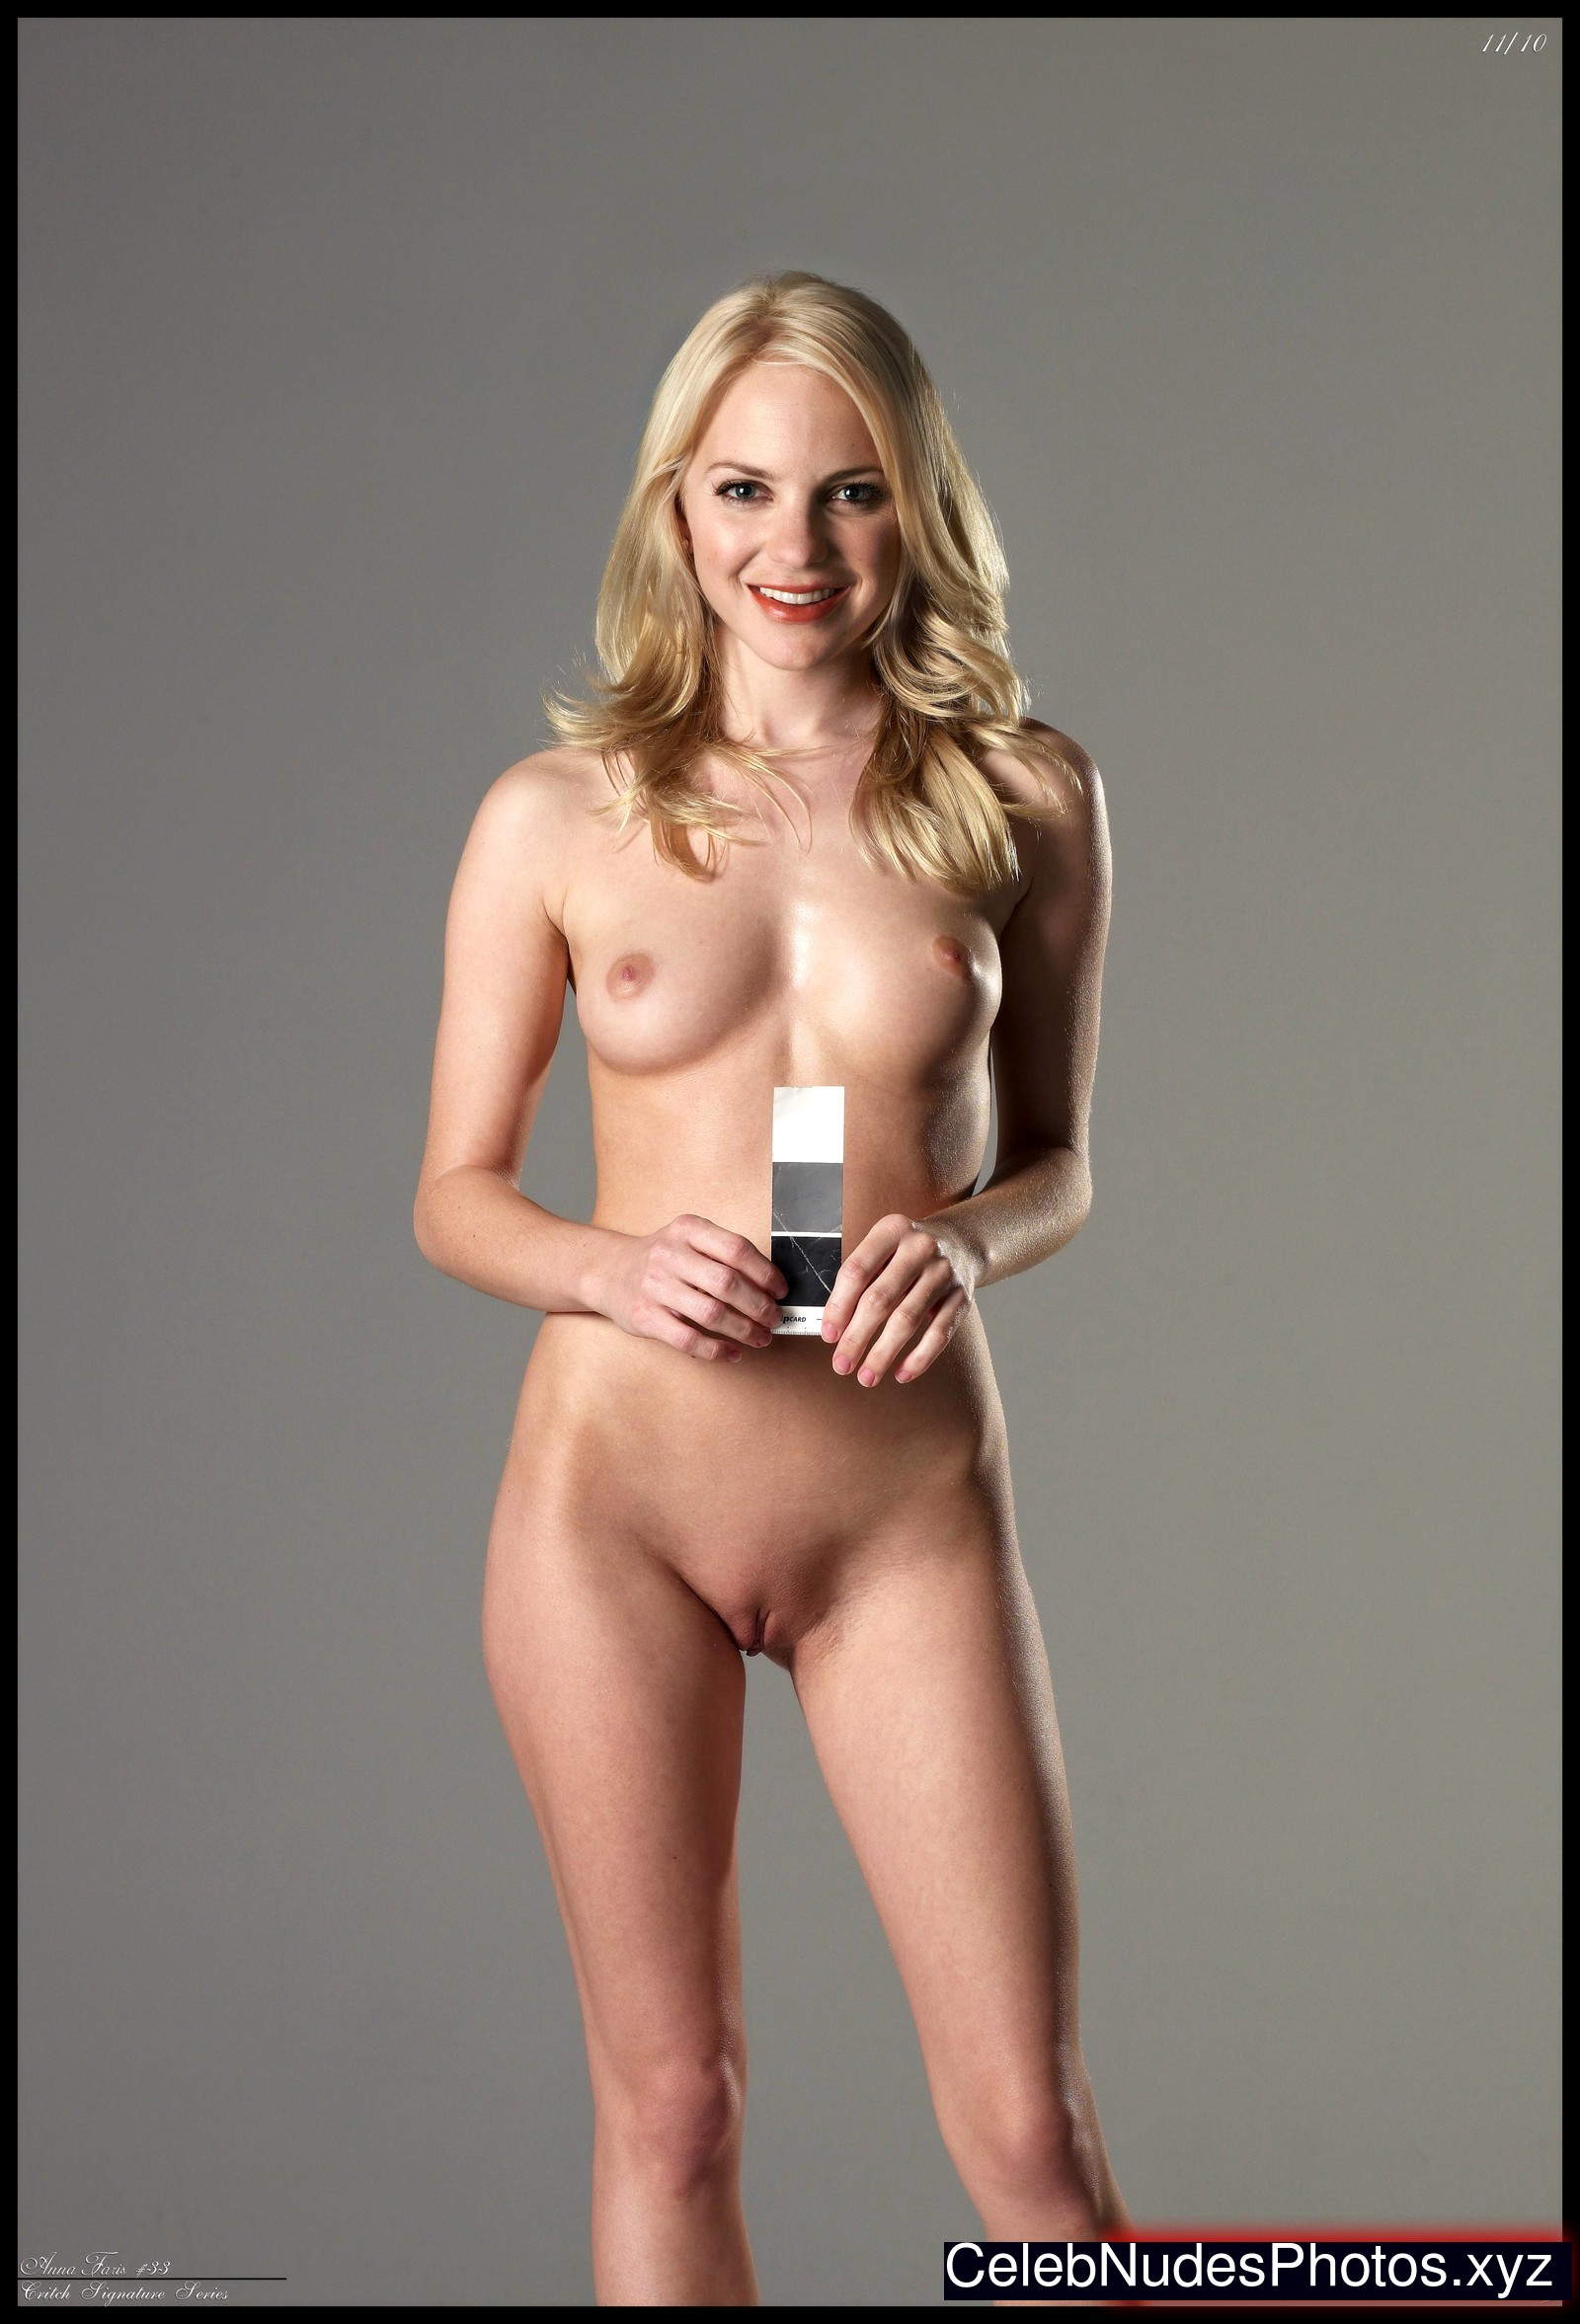 Lie. Actress anna faris nude remarkable, rather